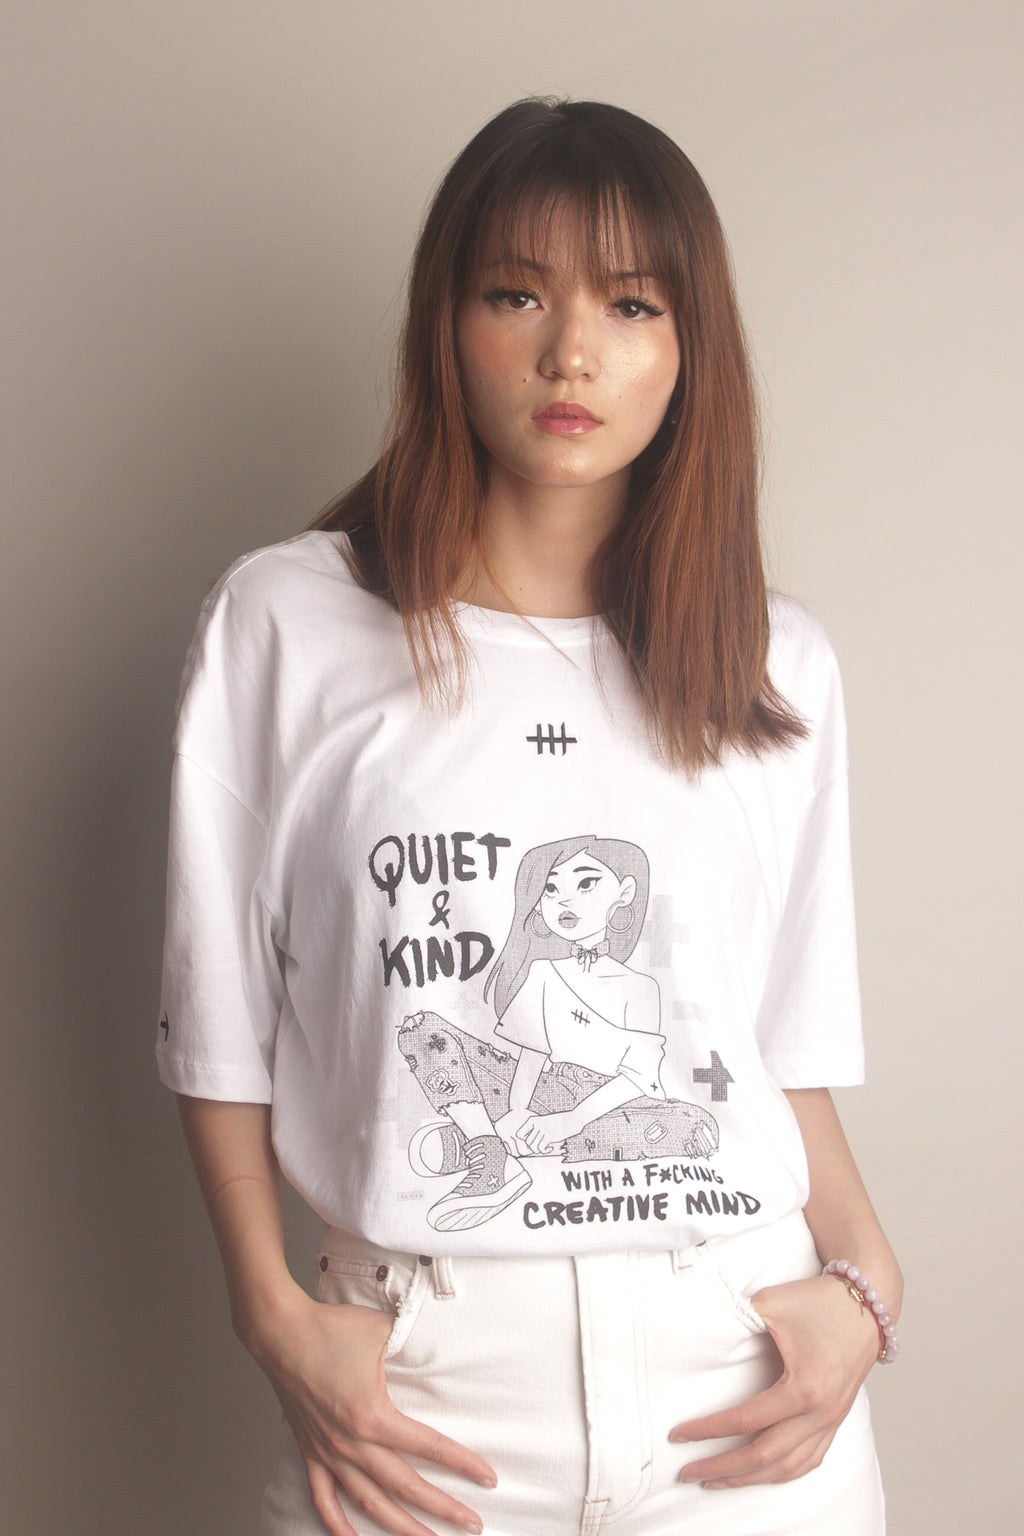 Consttant x Ree Artwork Collaboration T-Shirt